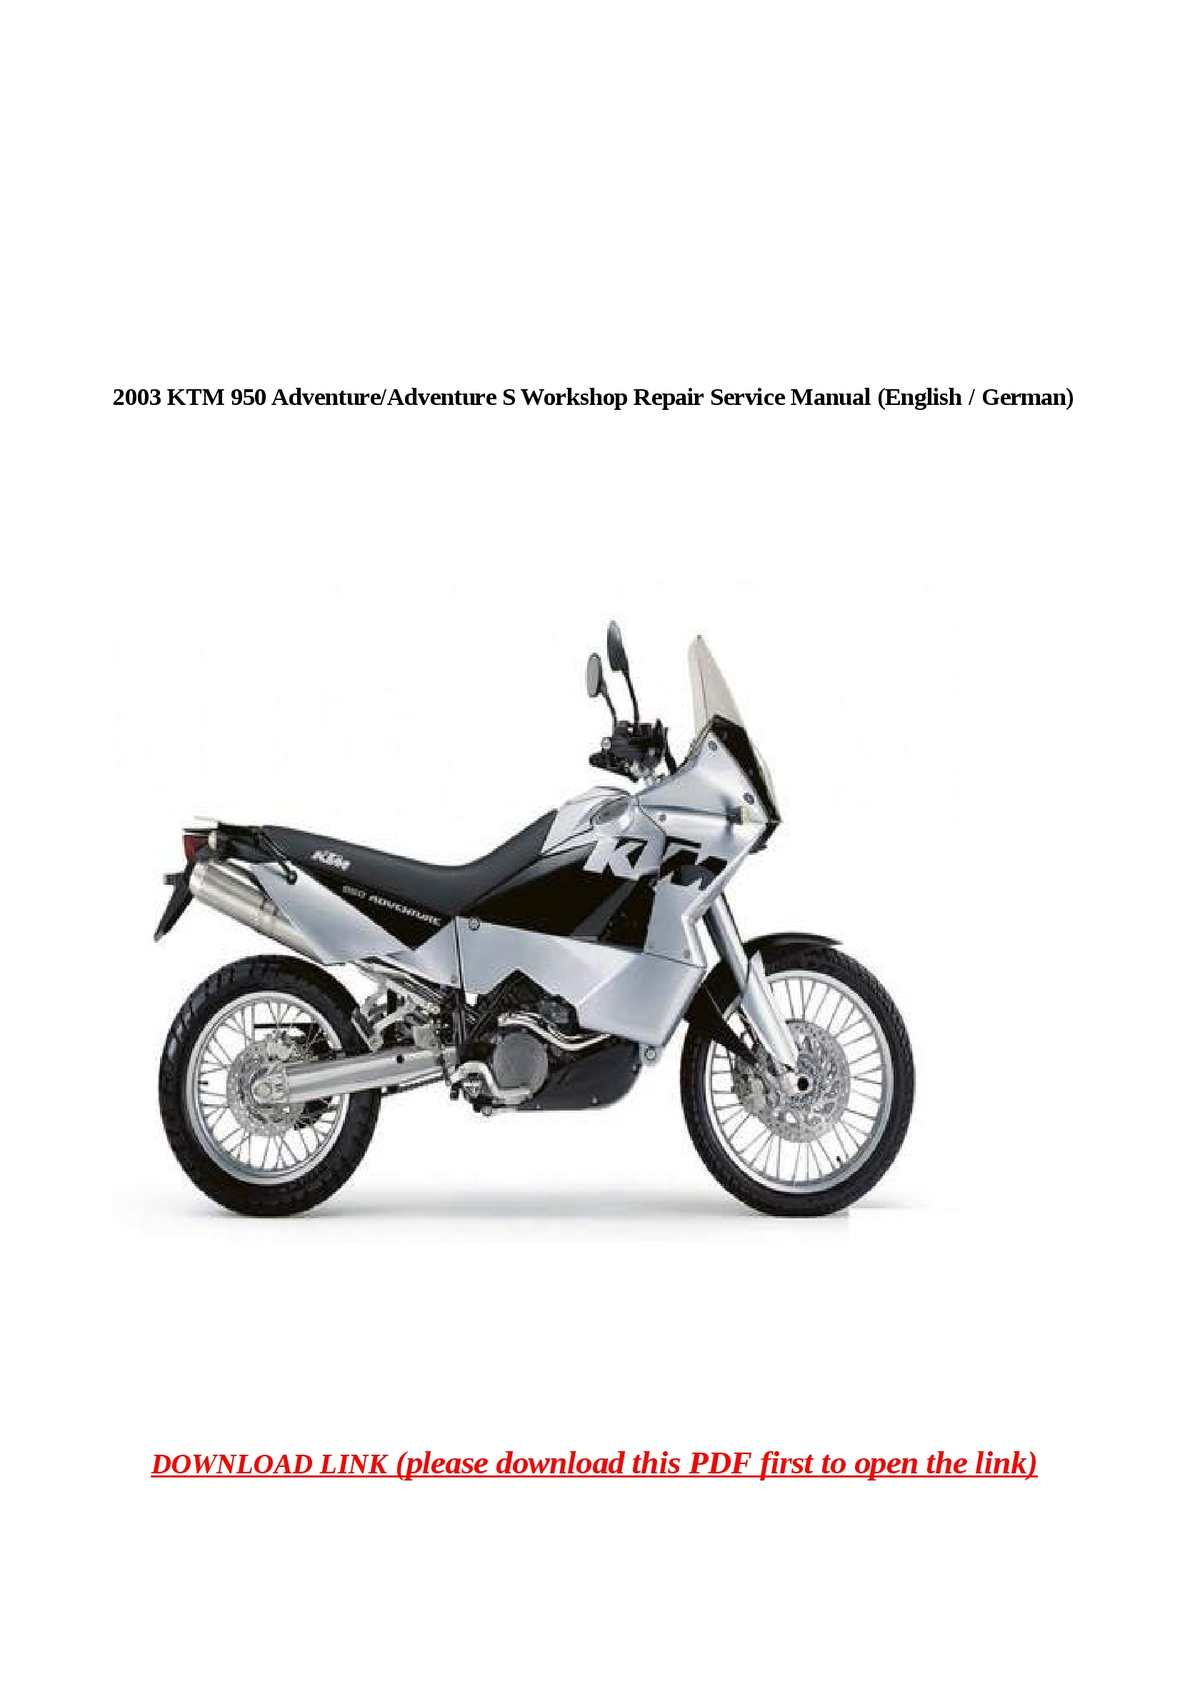 2003 Ktm 950 Workshop Service Repair Manuals Download